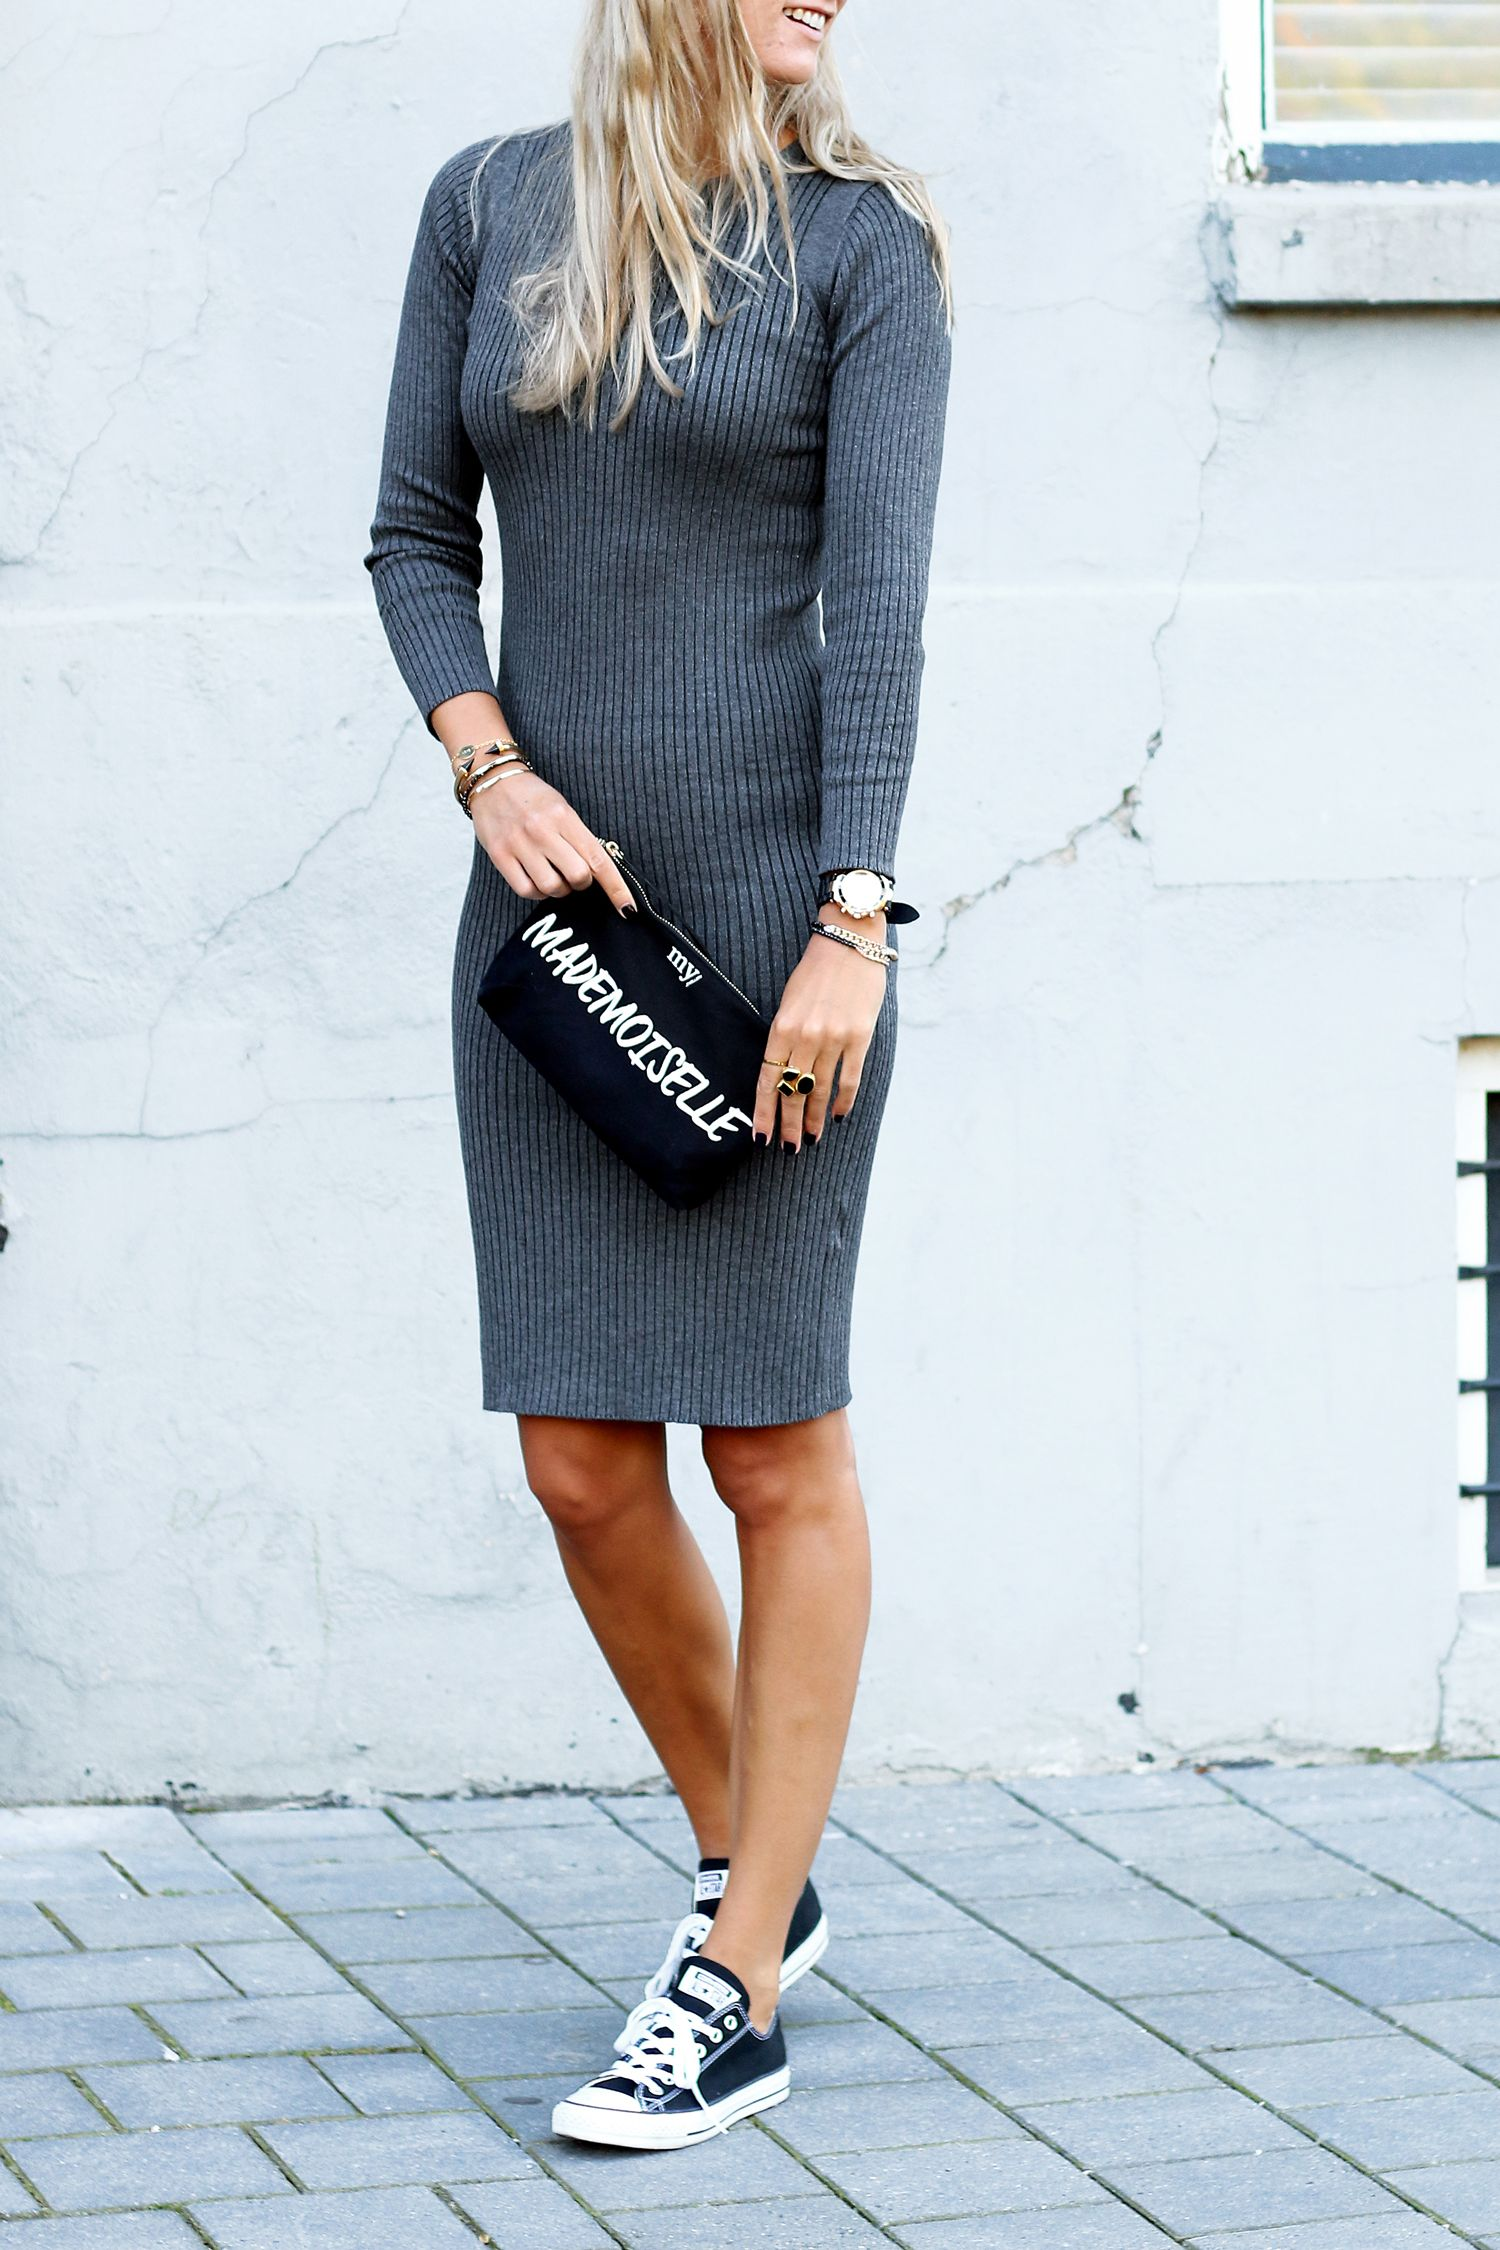 f0f262e07731 Knit dress with sneakers.